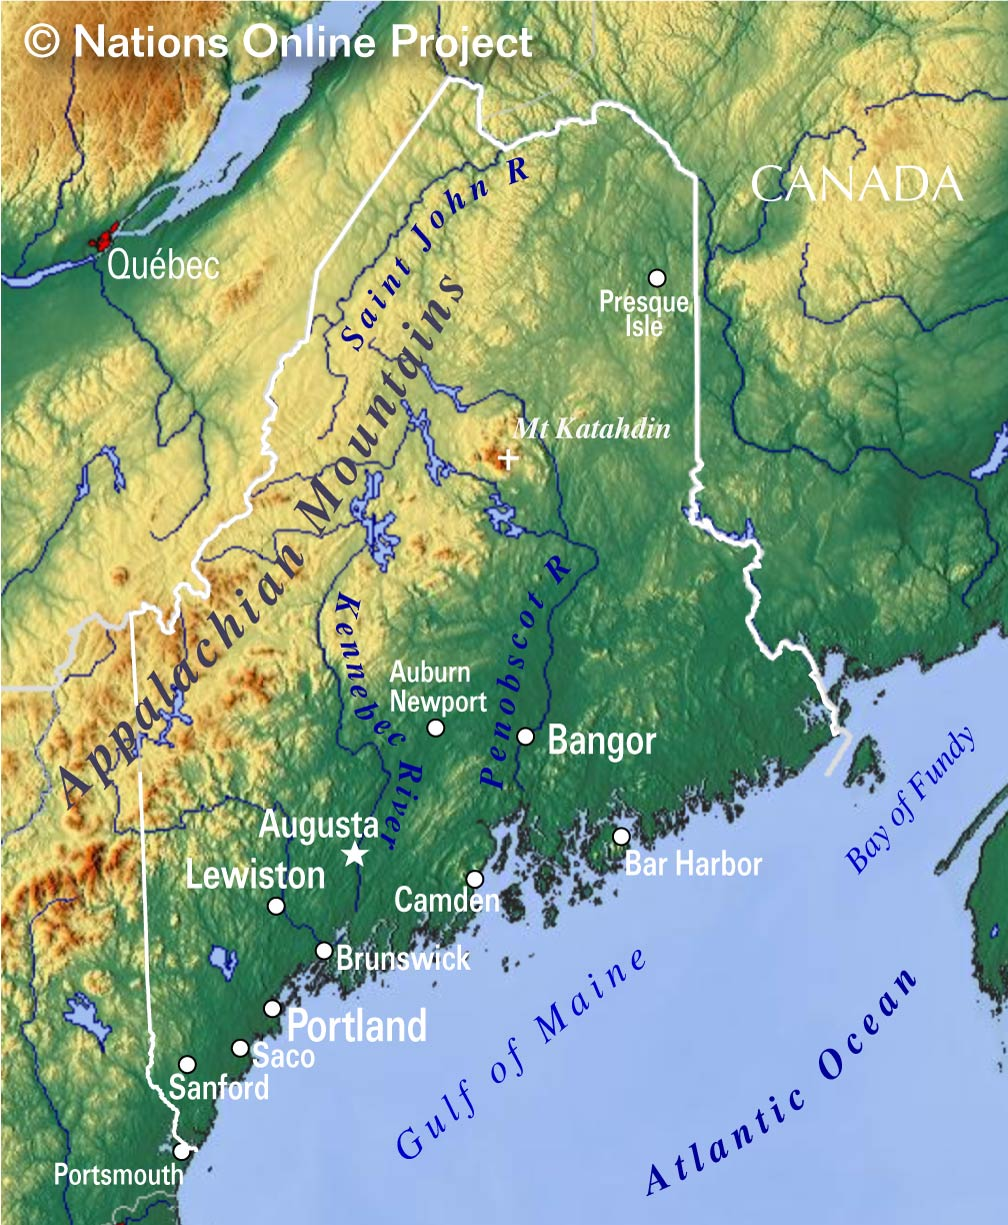 Topography Map Of Maine.Reference Maps Of Maine Usa Nations Online Project